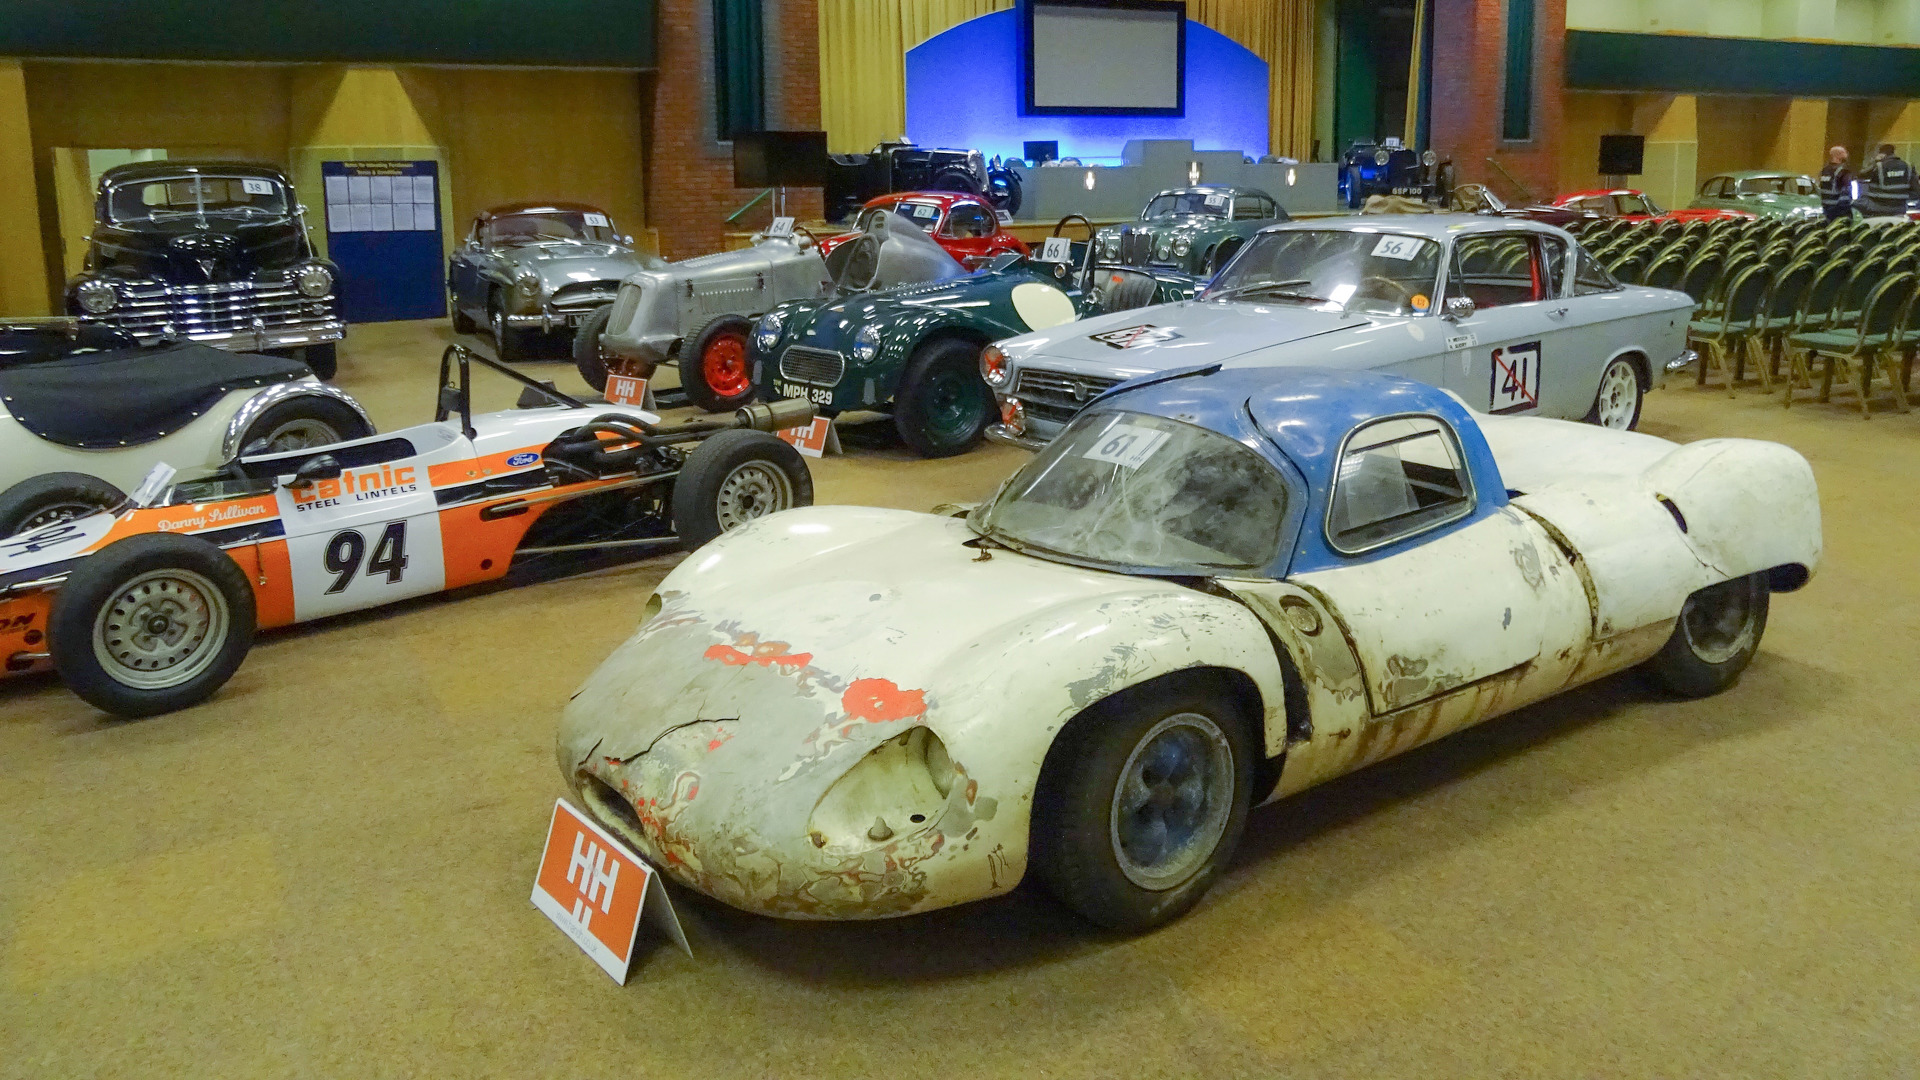 Barn Find British Race Car With Wood Chassis Sells For 105k At Auction